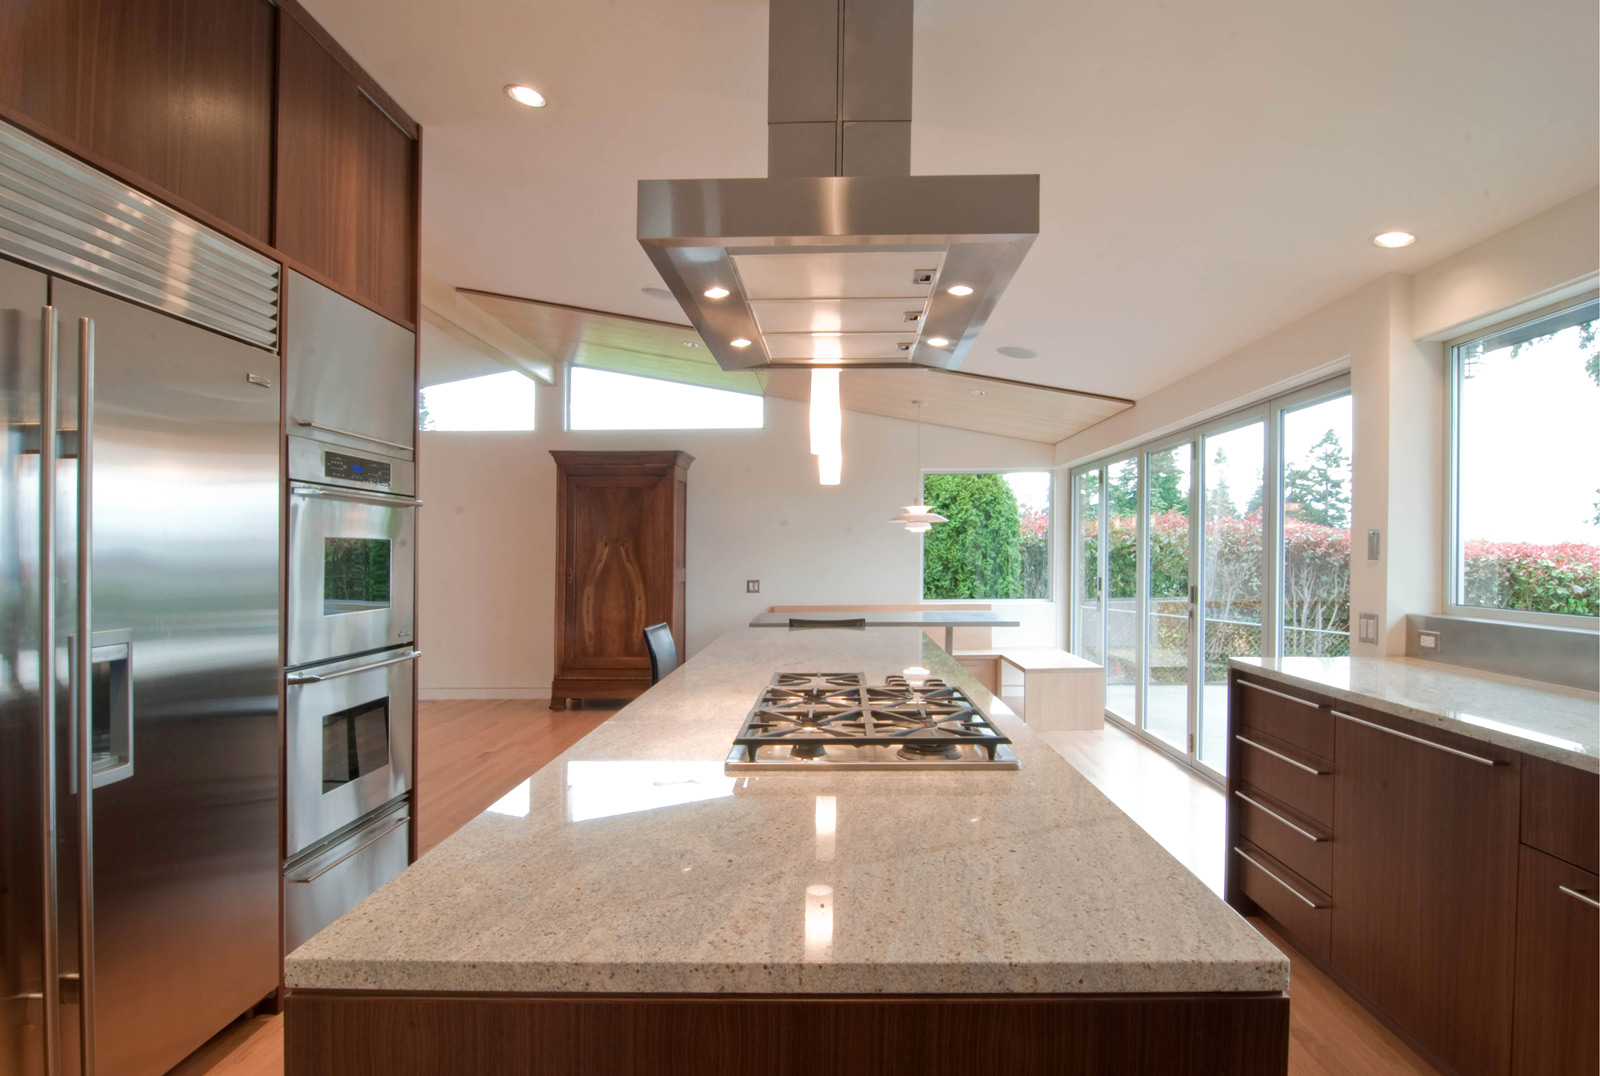 Kitchen Island Extractor Fans kitchen island vent hood youtube with kitchen island vent hood